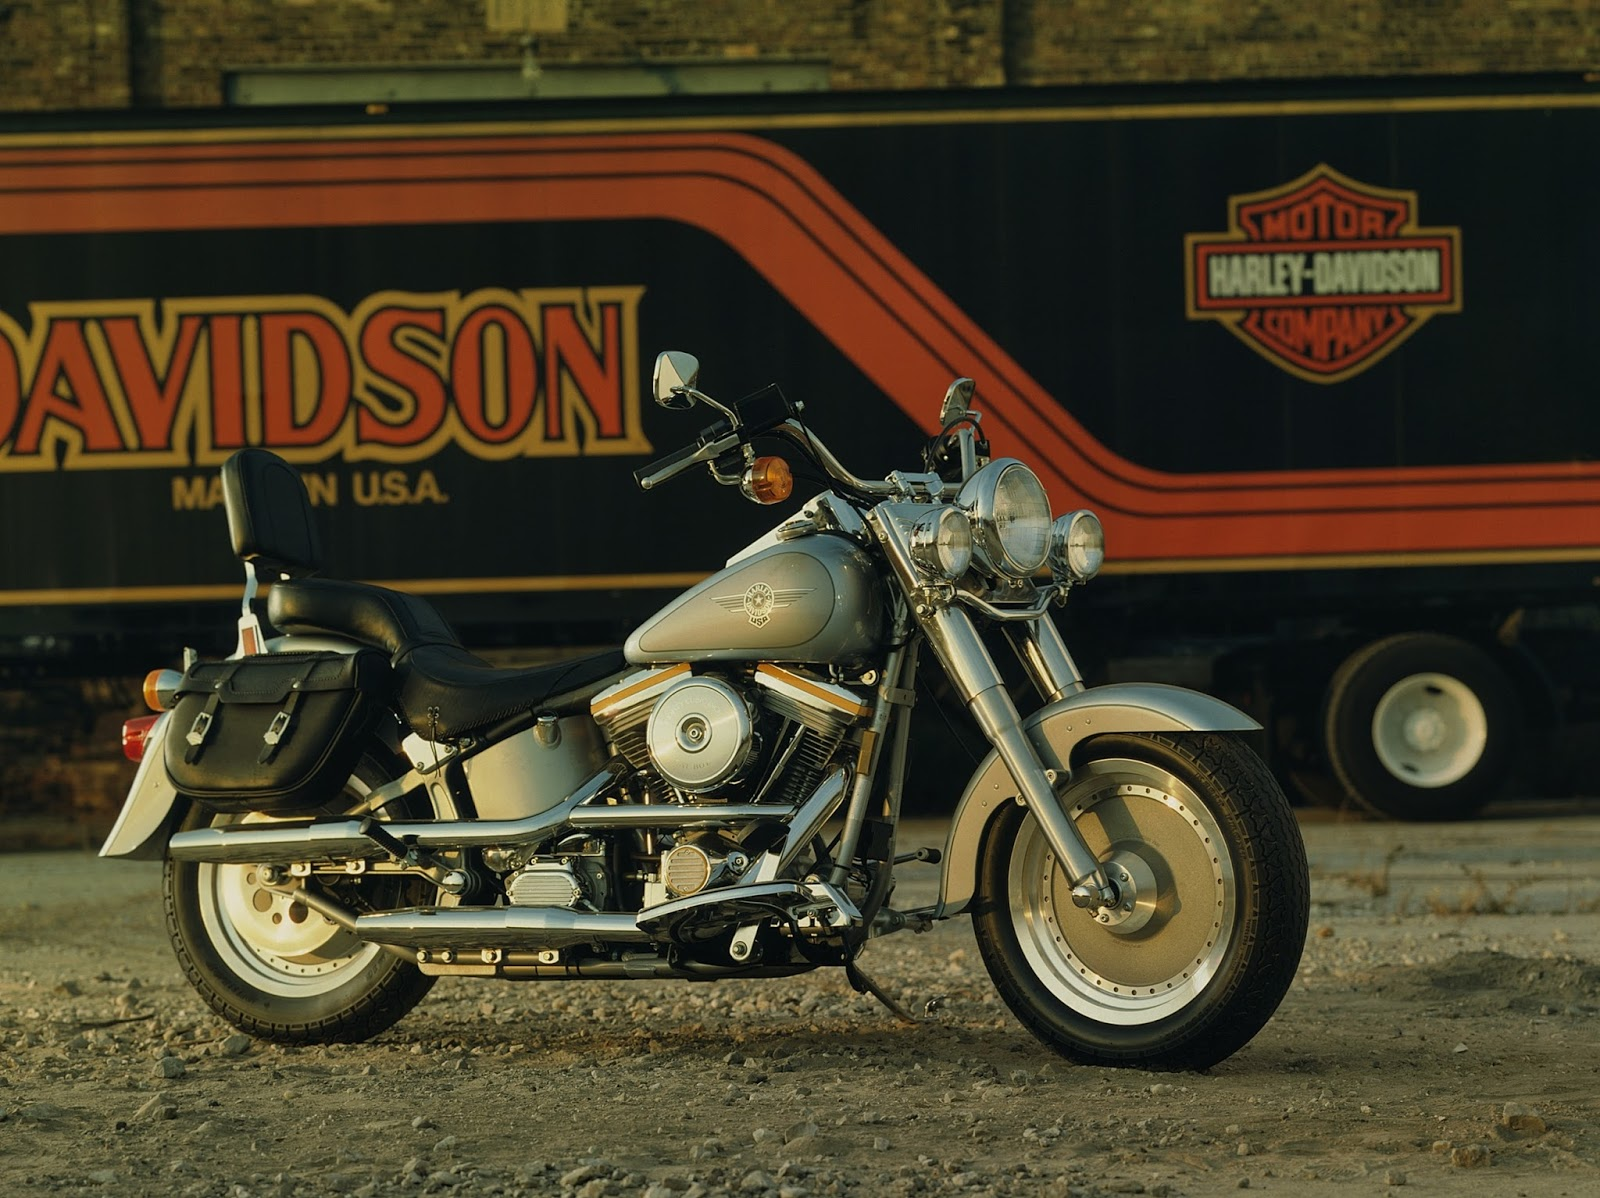 the growth of harley davidson company during the 1990s She first consulted with the harley-davidson motor company in 1990 to create brand strategies outside of north america later, she joined its senior management as harley's first woman vice president, responsible for global marketing and brand management as well as the global licensing program.